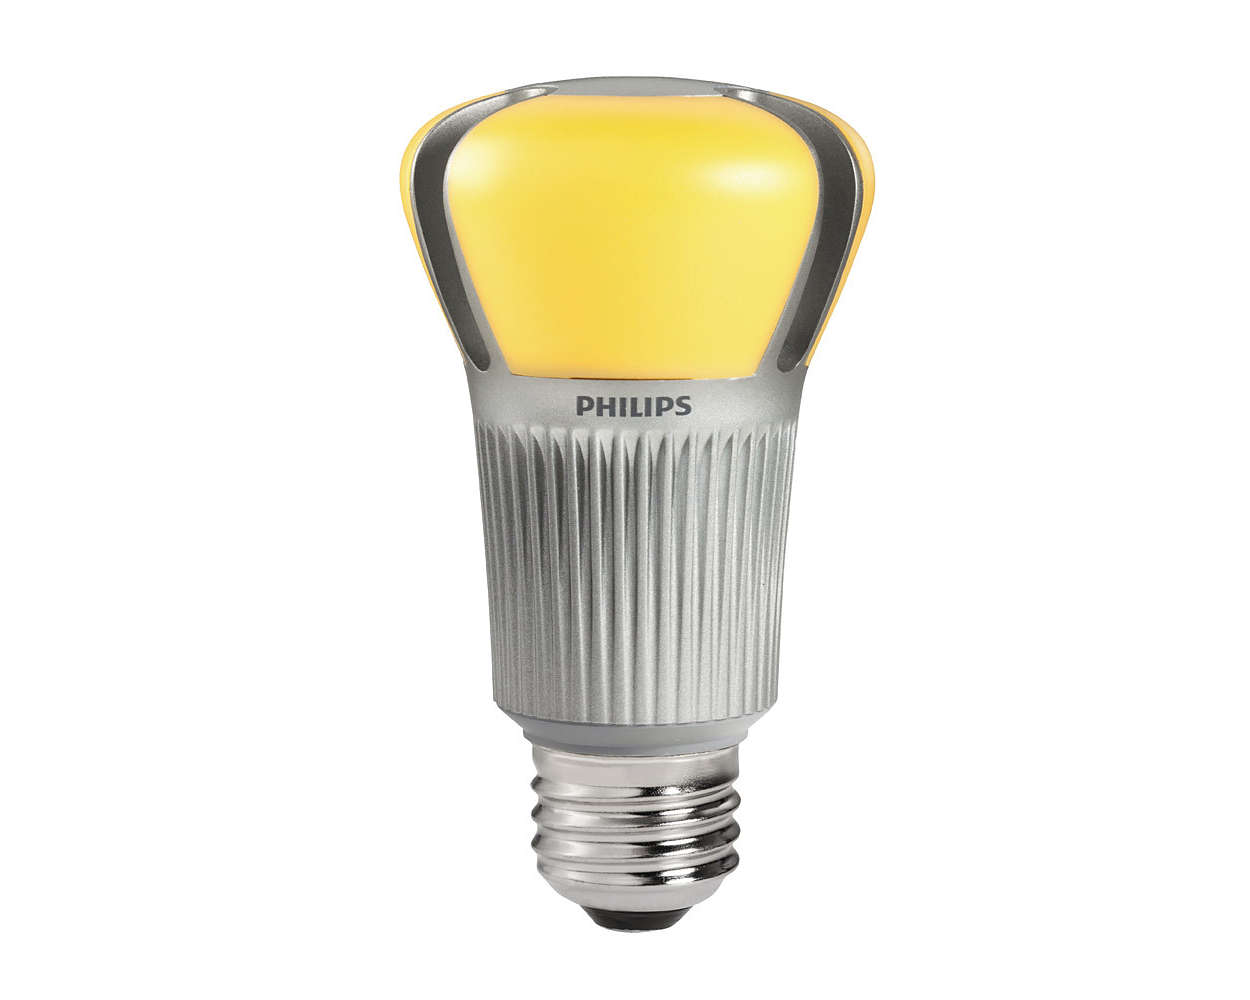 Ambientled dimmable a19 bulb philips lighting Household led light bulbs